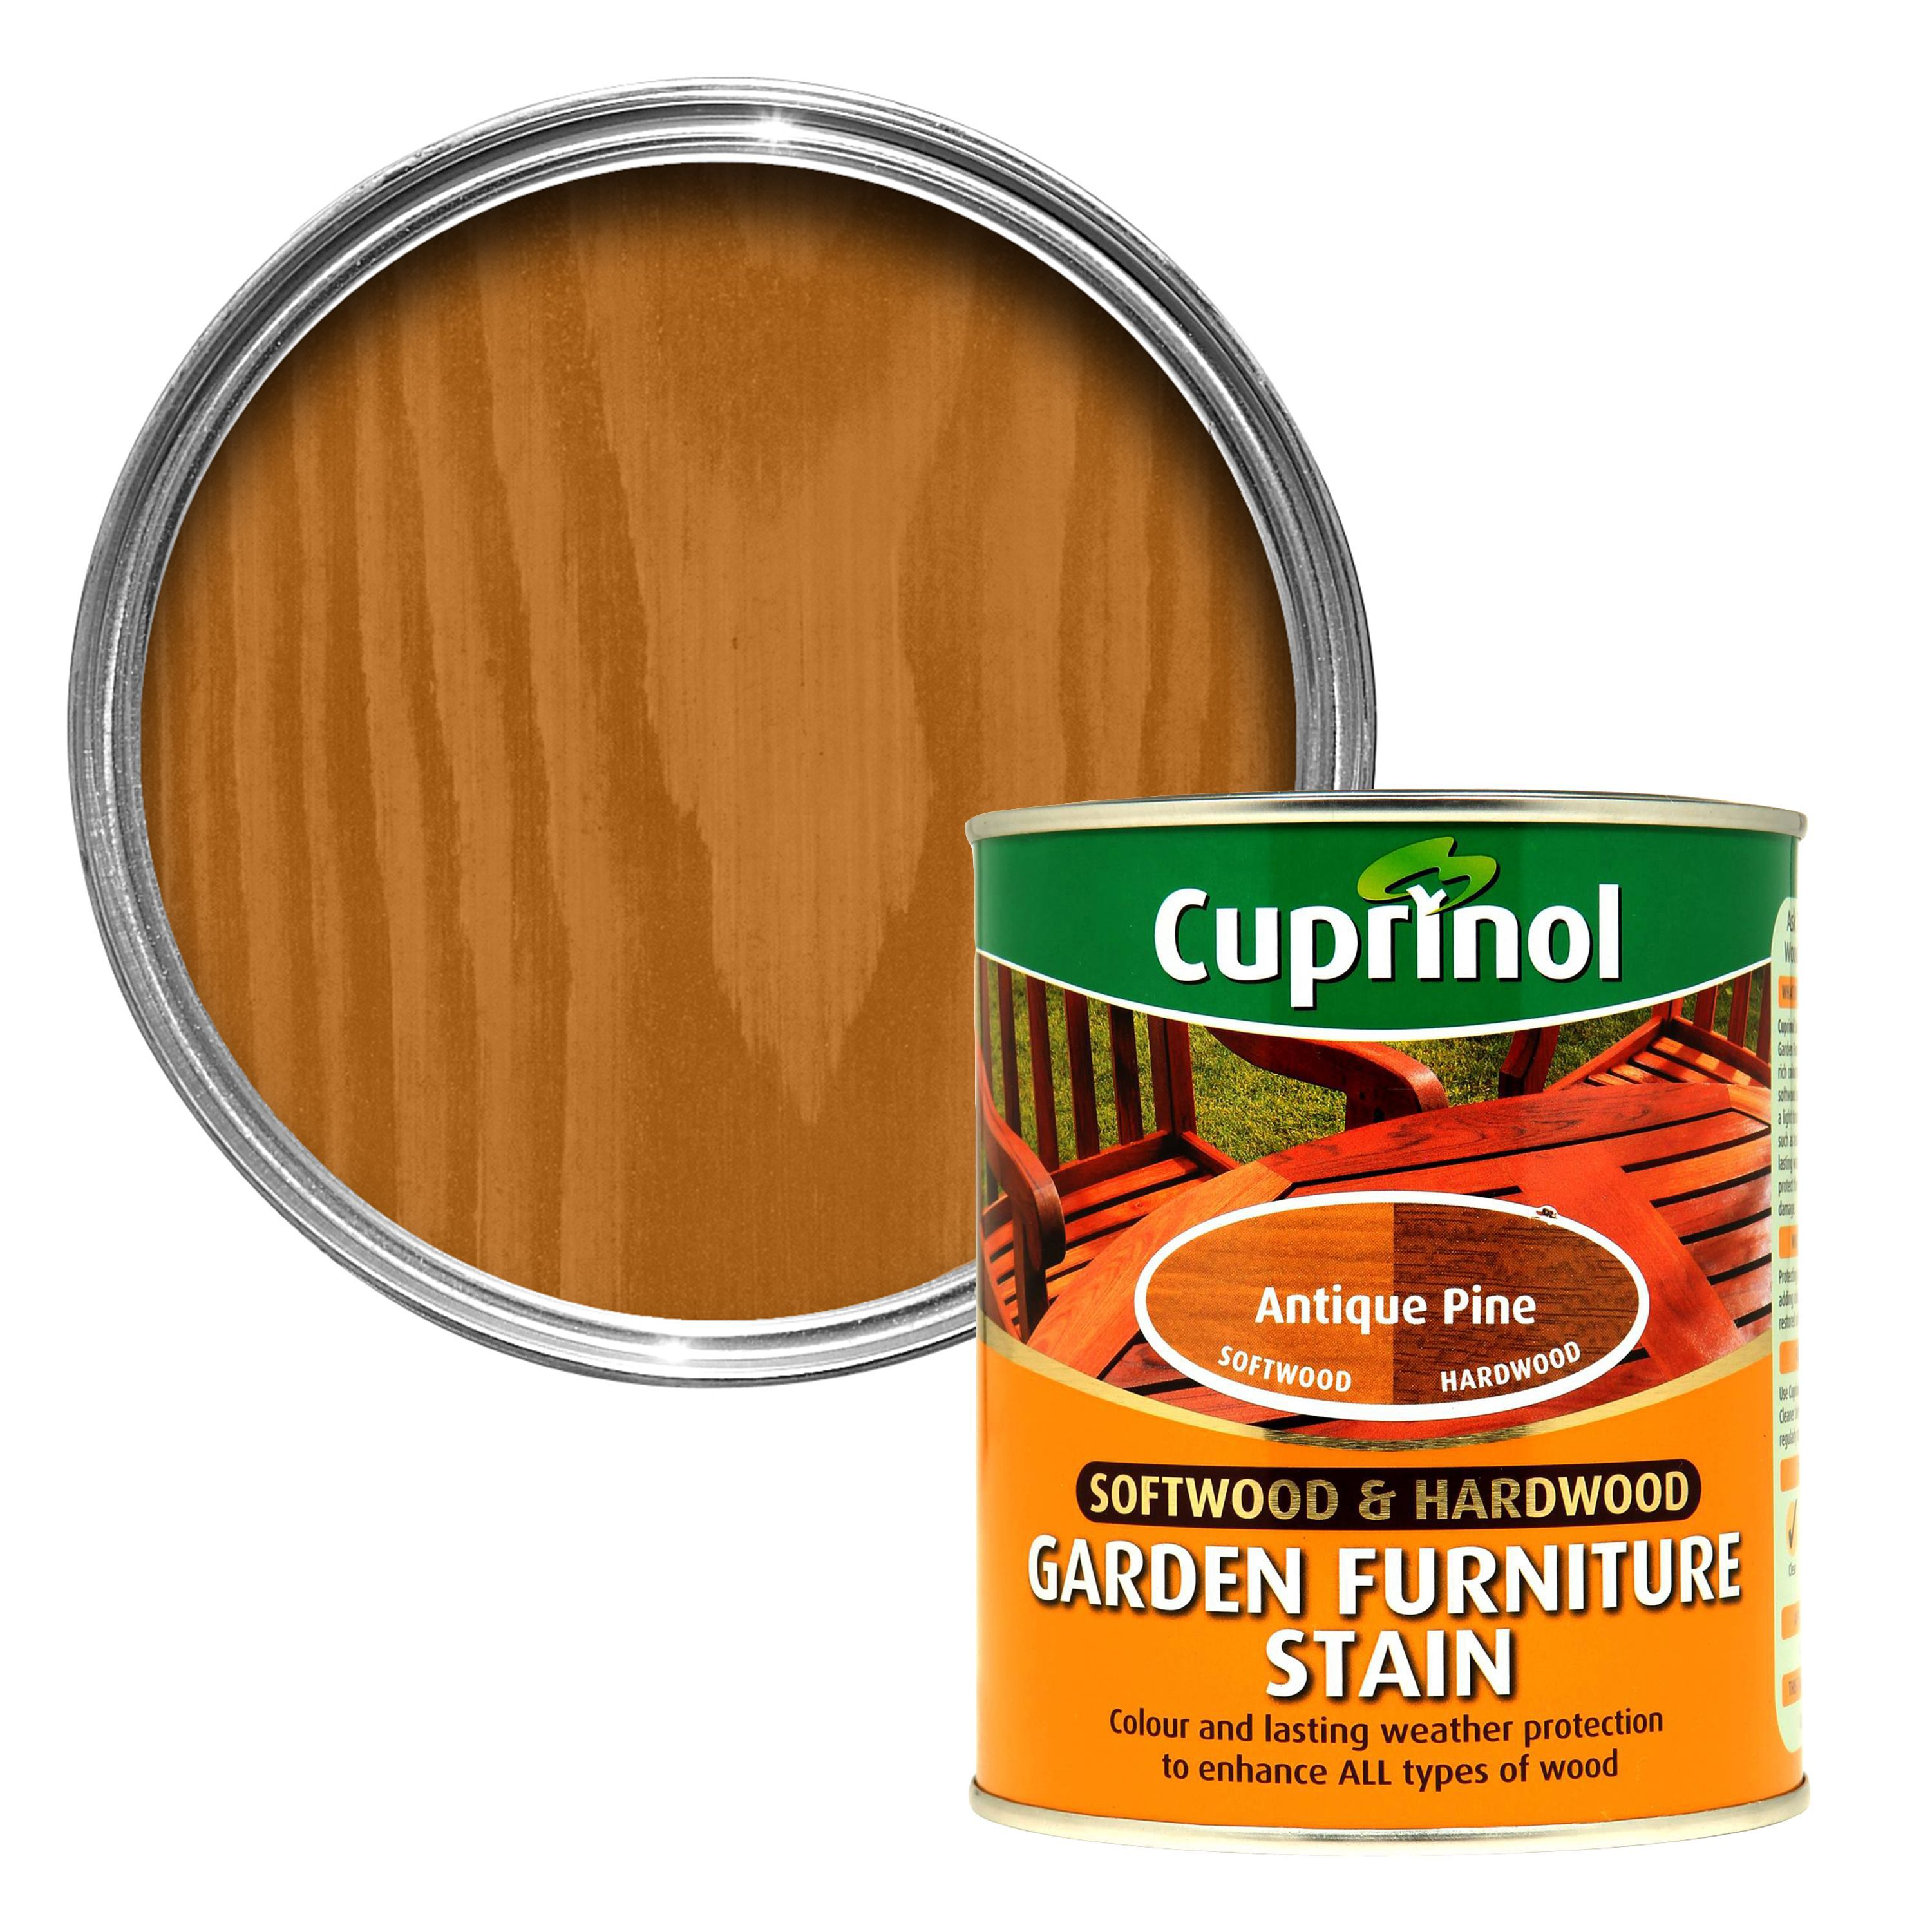 Garden Furniture Stain cuprinol softwood & hardwood antique pine garden furniture stain